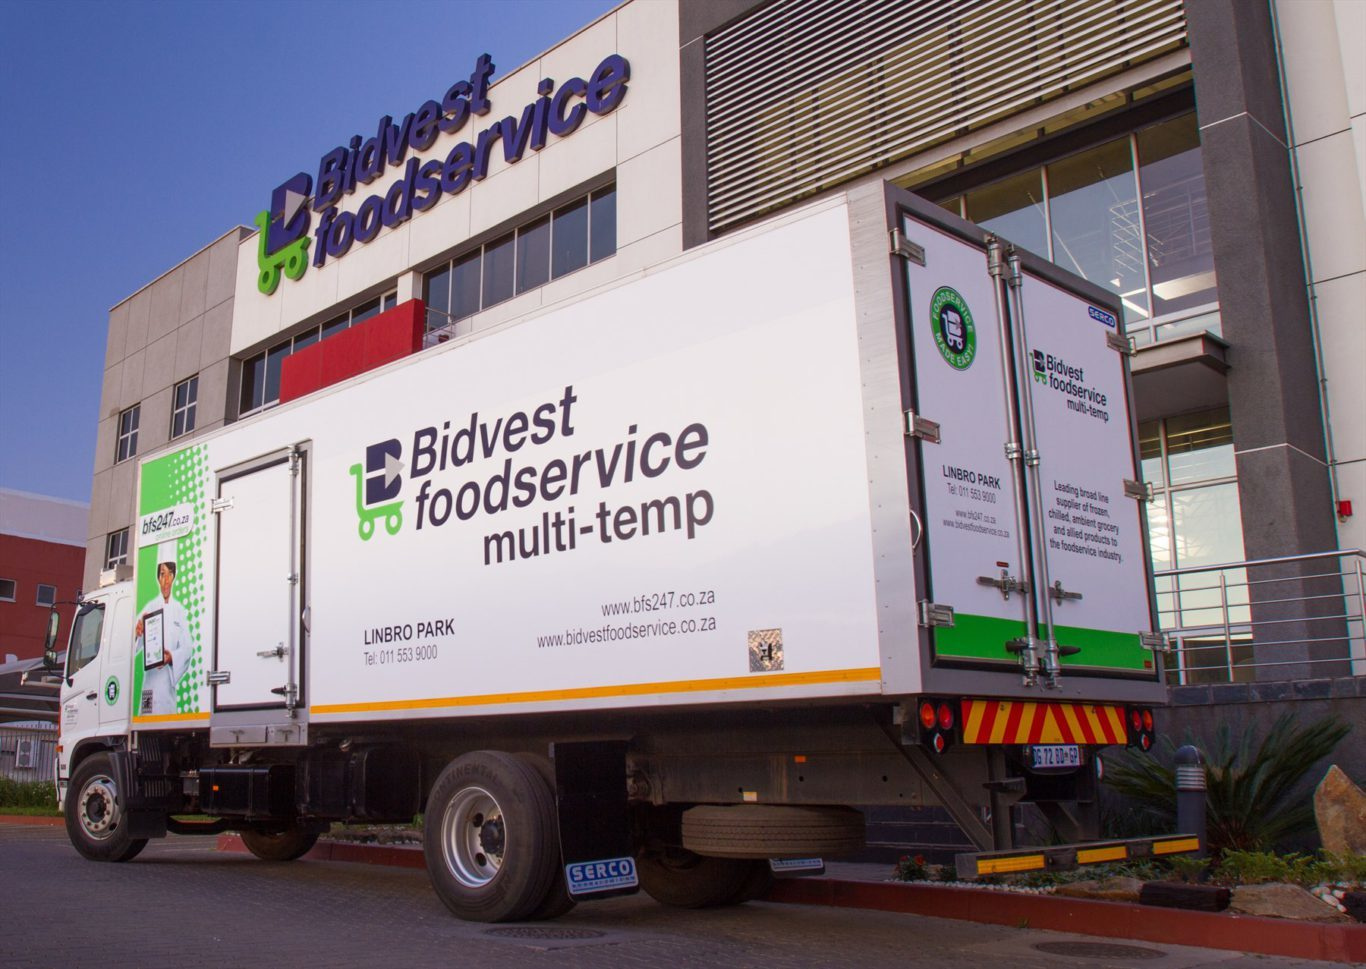 Bidvest Food Services has bought more than 85 Hino trucks from Hino Midrand for its national delivery fleet, which consists of more than 200 vehicles, mainly Hinos.